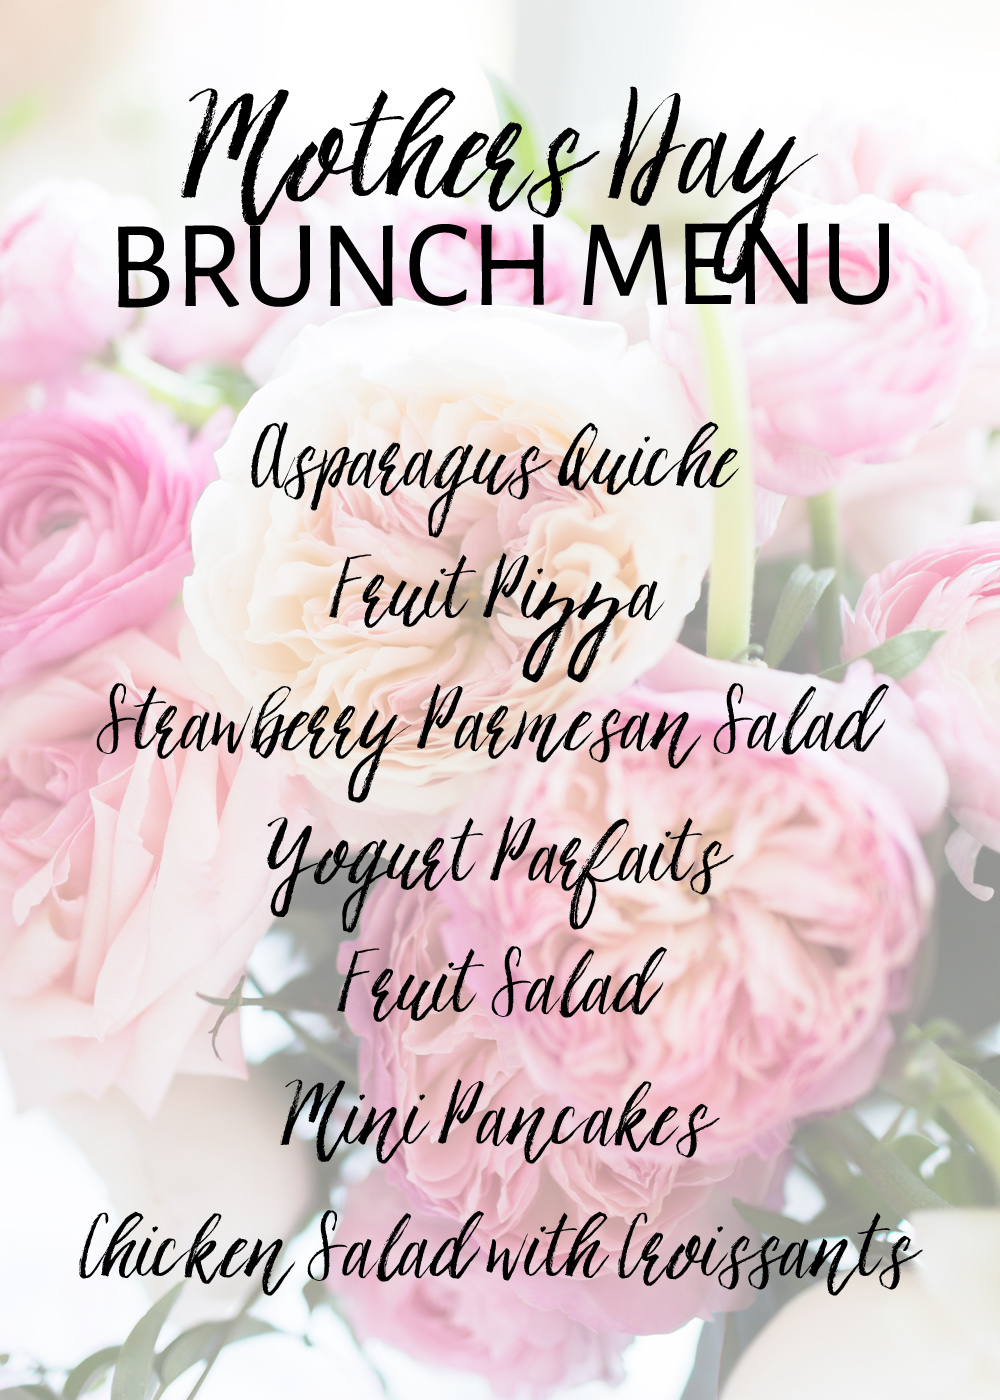 mothers-day-brunch-menu-ideas-2